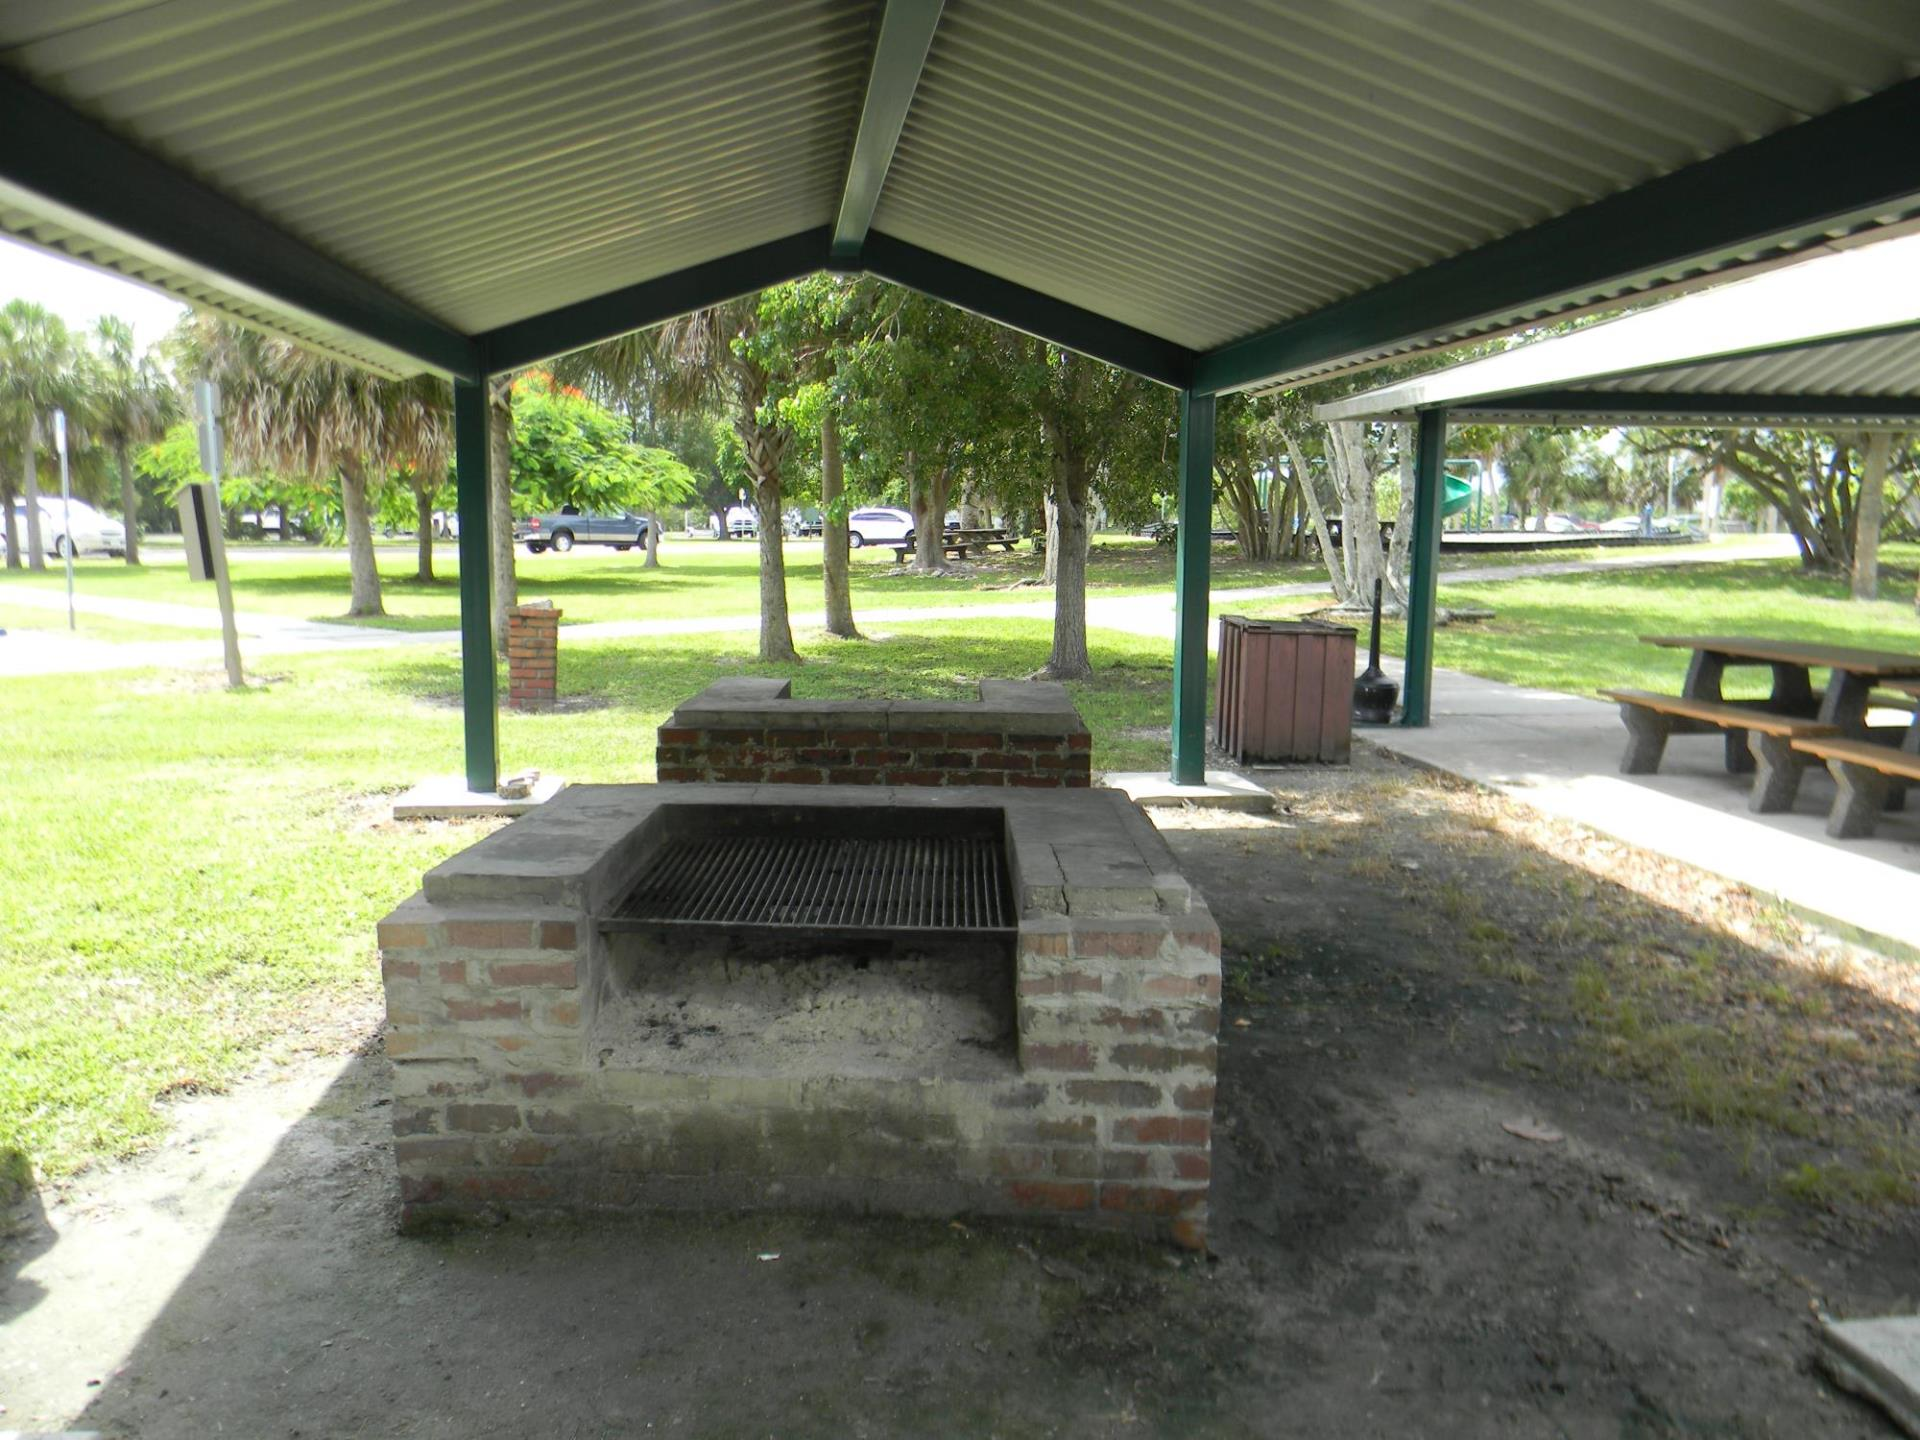 BBQ Grills at Ponce Park